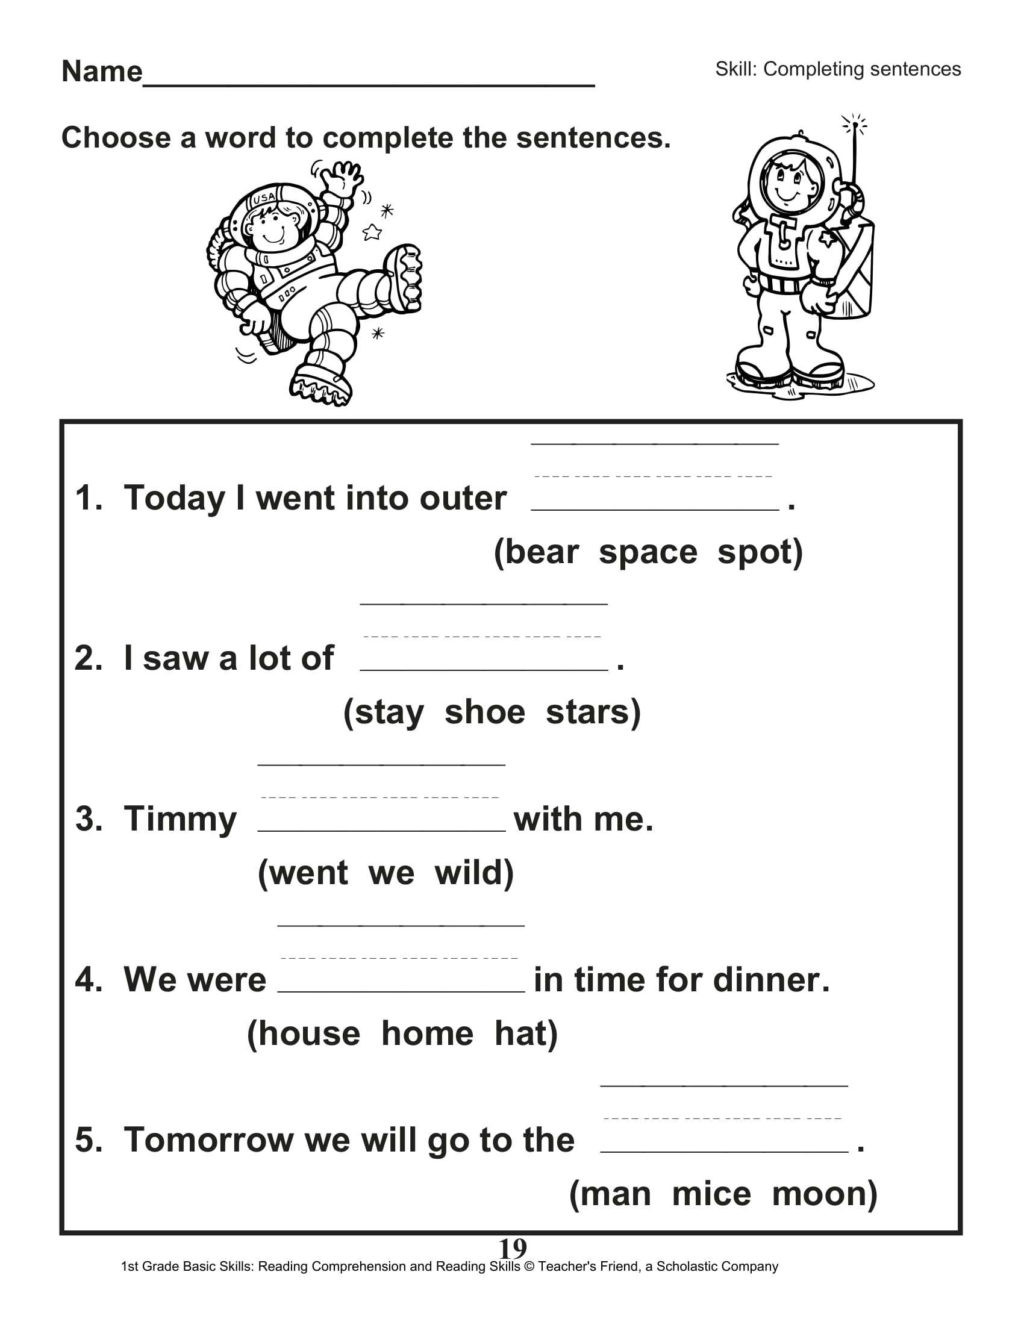 Complete Sentences Worksheets 1st Grade Worksheet Reading Prehension 1st Grade Printable